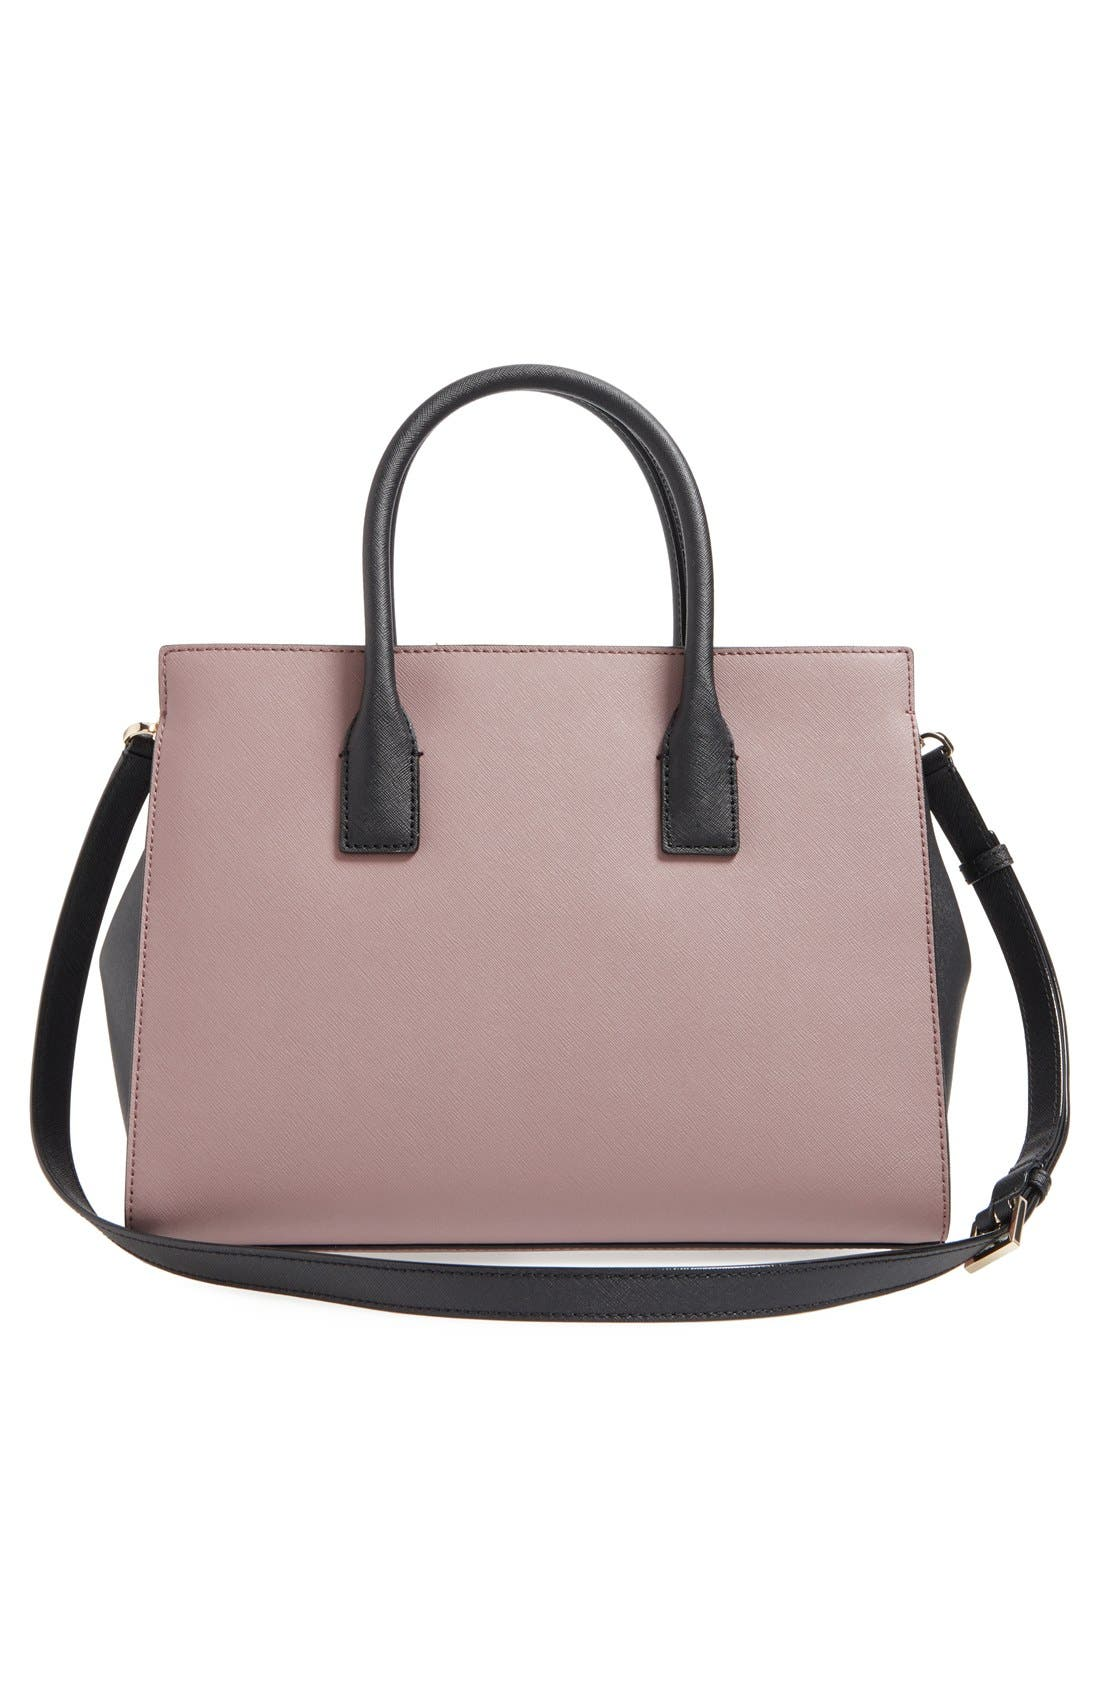 cameron street - candace leather satchel,                             Alternate thumbnail 50, color,